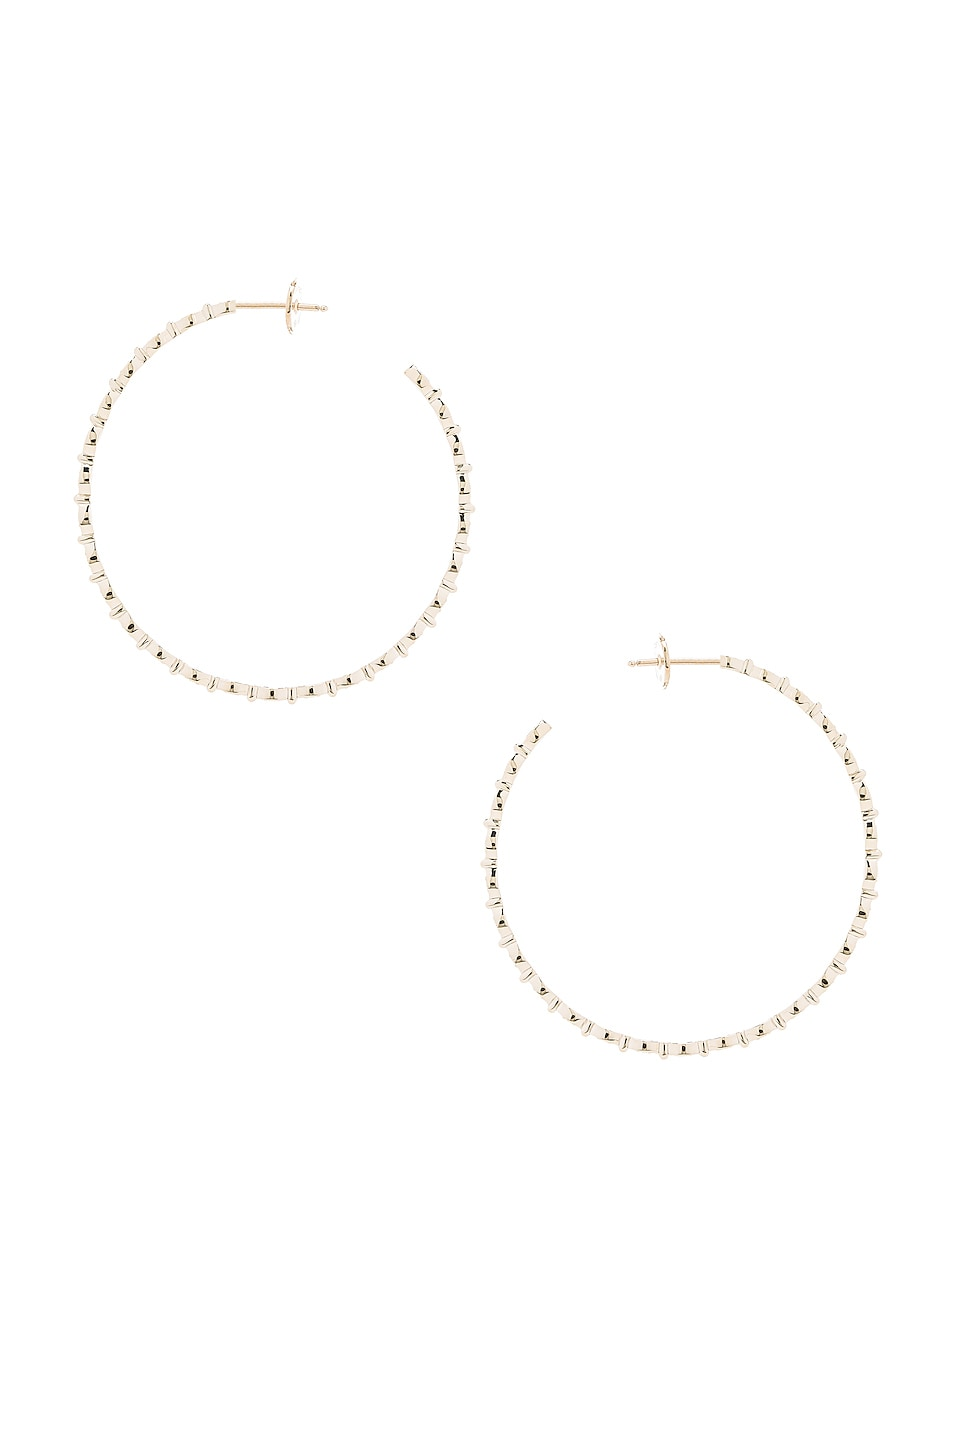 STONE PARIS YASMINE HOOP EARRINGS IN METALLICS